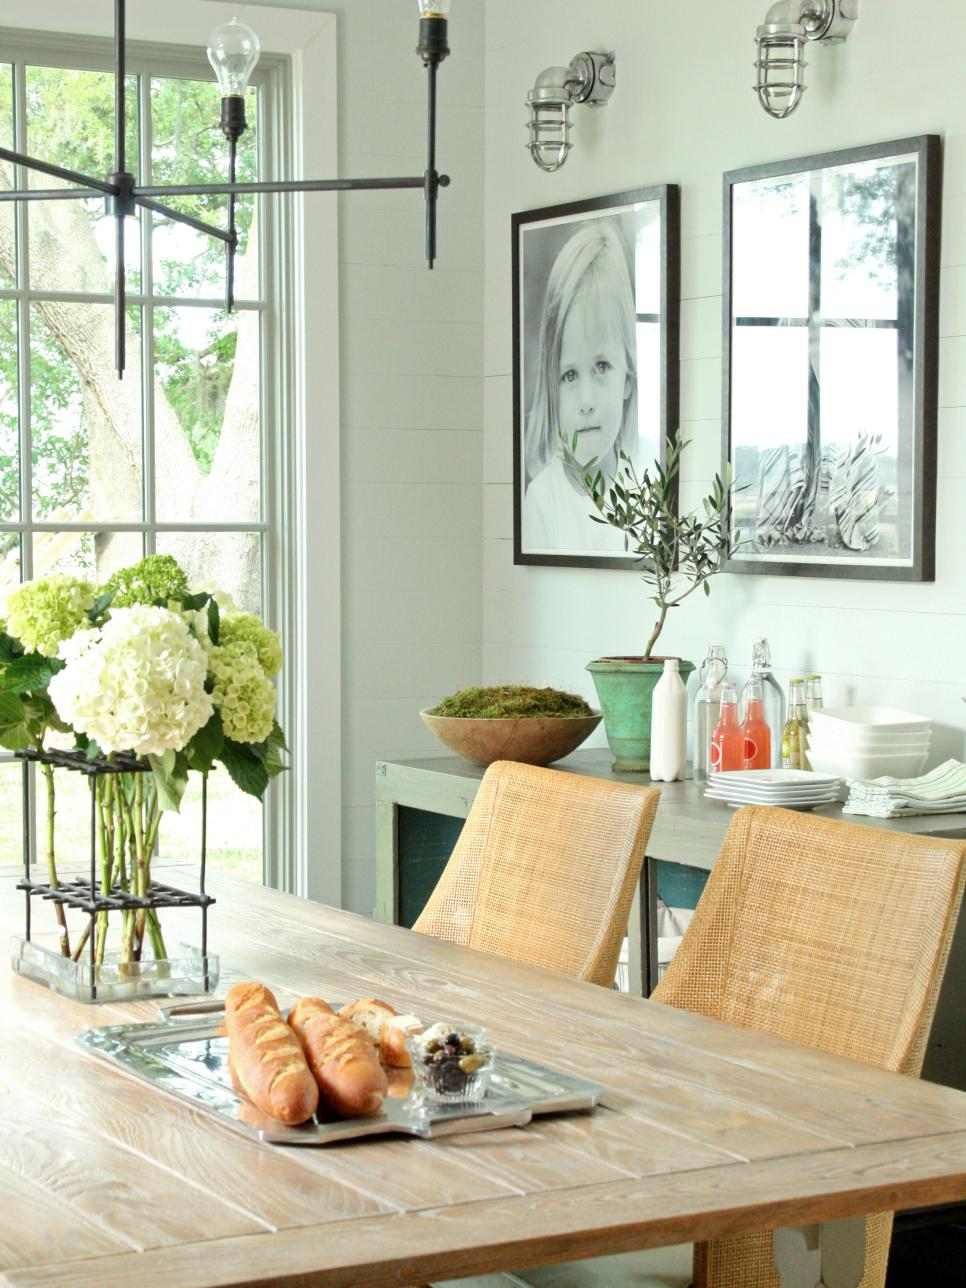 15 dining room decorating ideas hgtv for Dinner room ideas